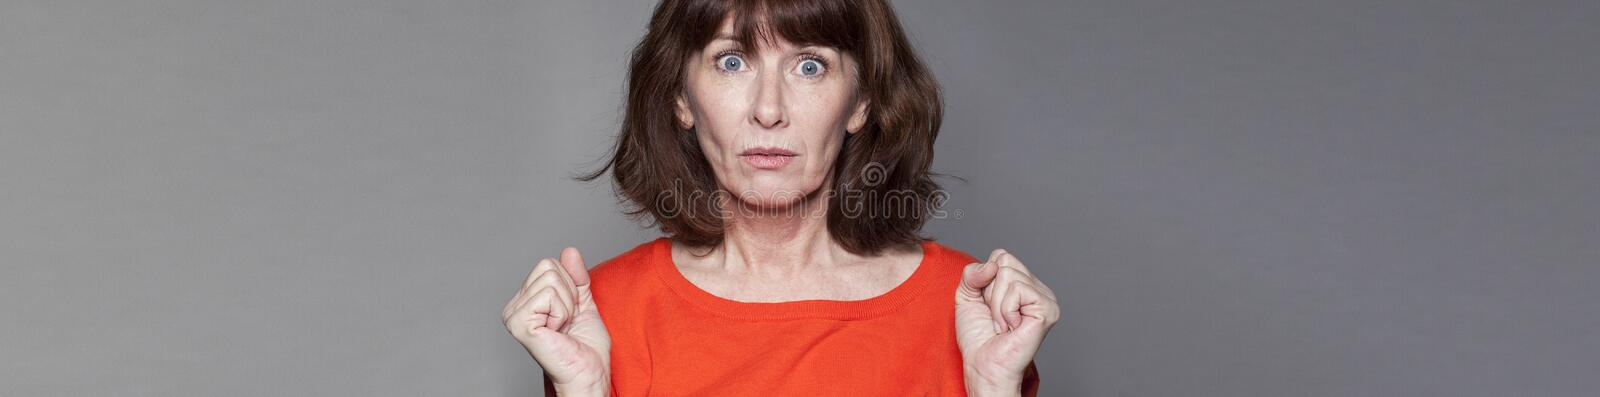 Surprised middle aged woman expressing misunderstanding, gray banner royalty free stock photos